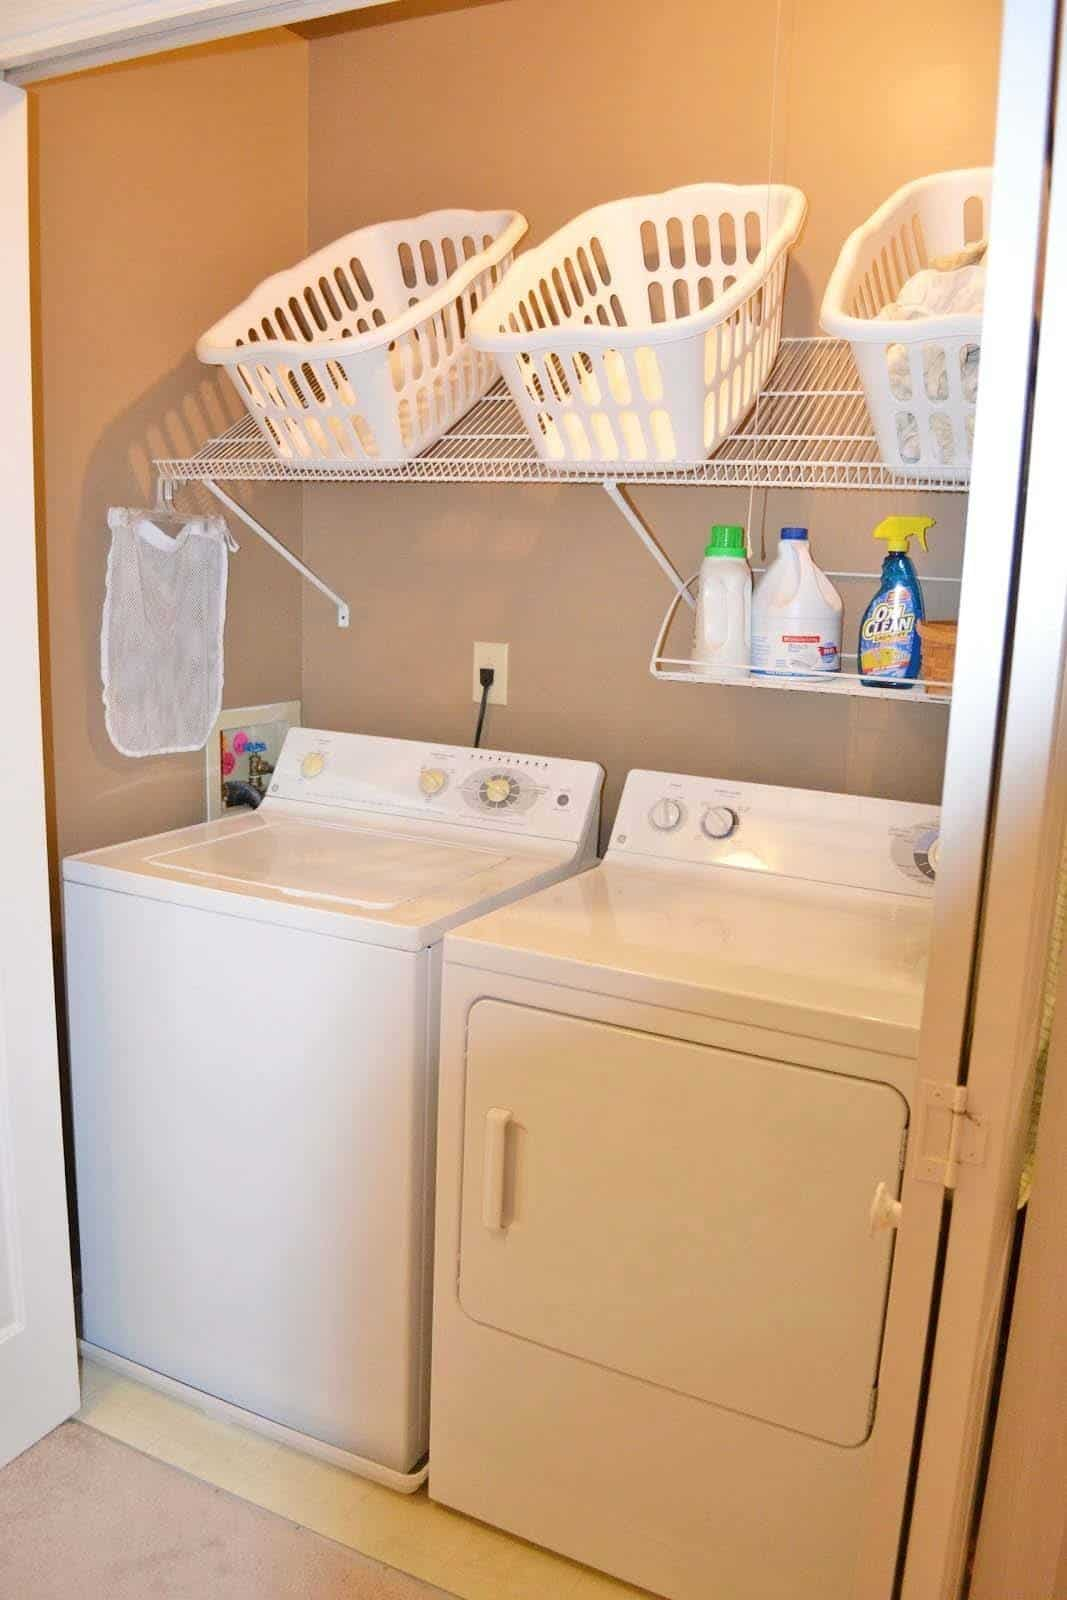 Laundry Room Organization Ideas-27-1 Kindesign